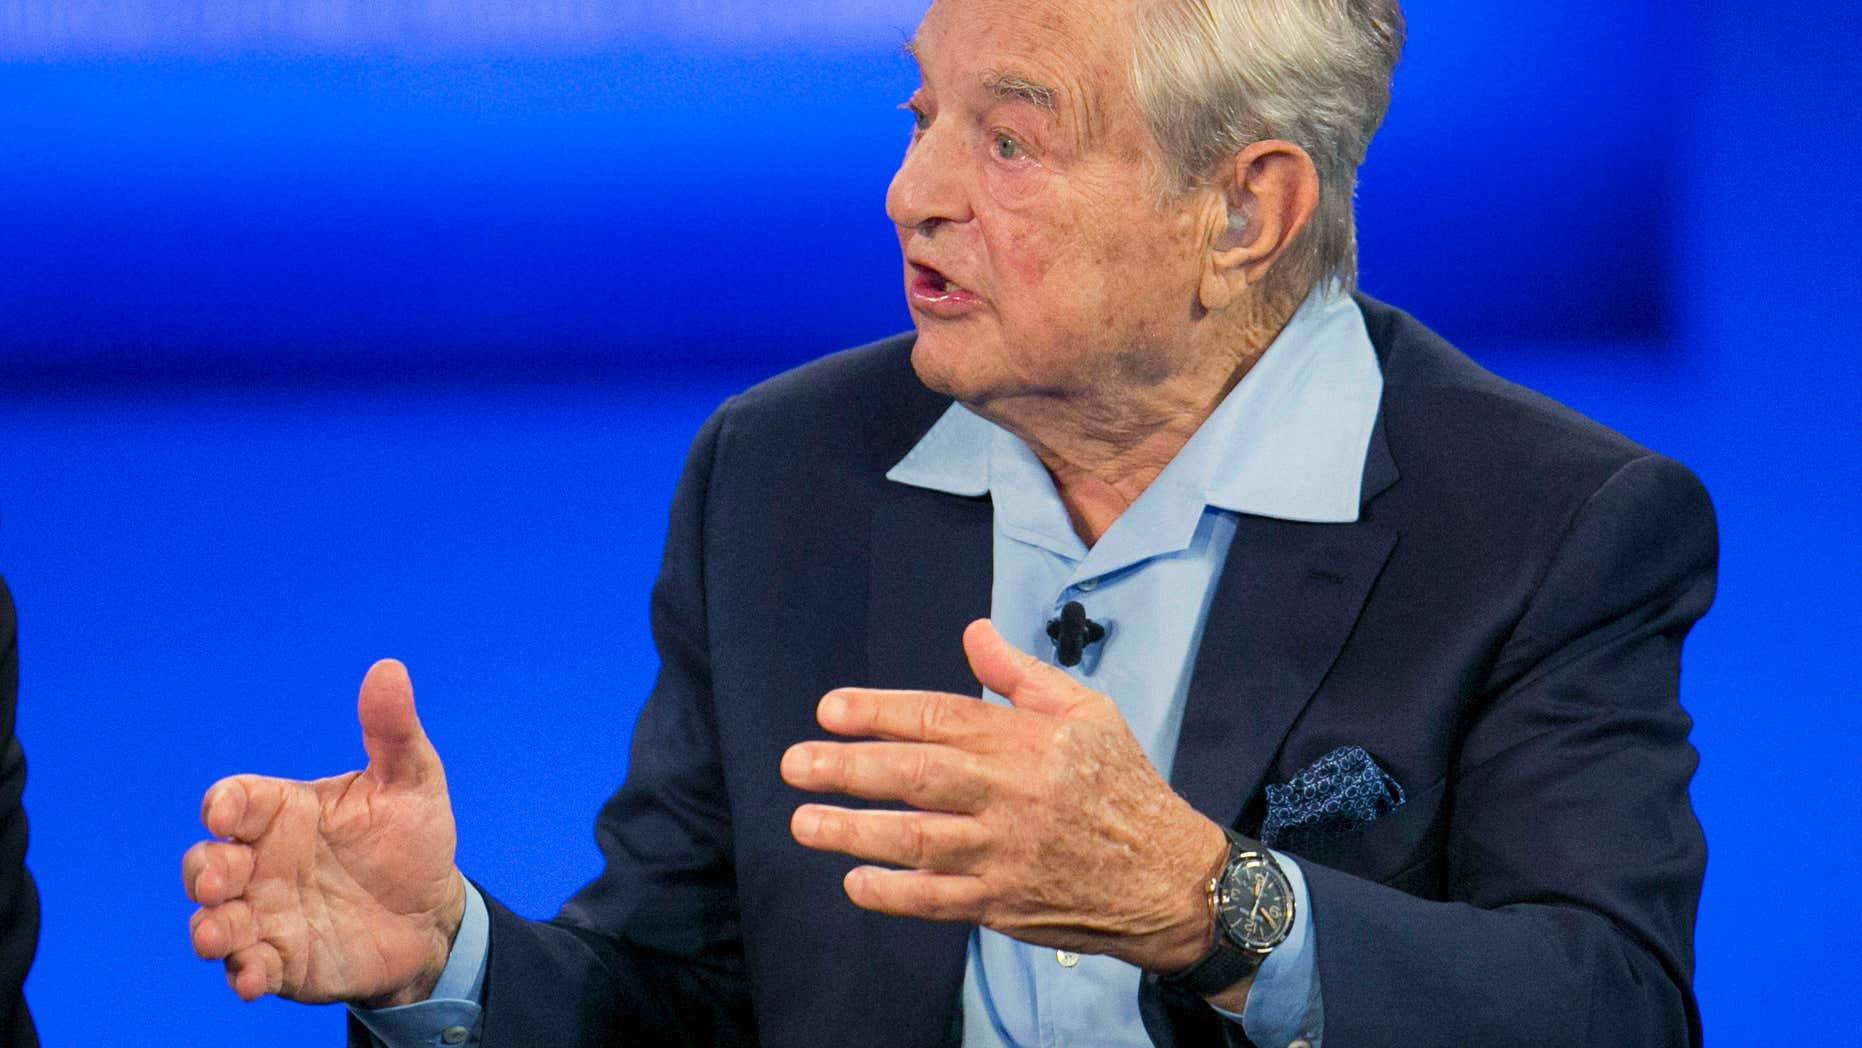 FILE - In this Sept. 27, 2015, file photo, George Soros, chairman of Soros Fund Management, talks during a television interview for CNN at the Clinton Global Initiative in New York.